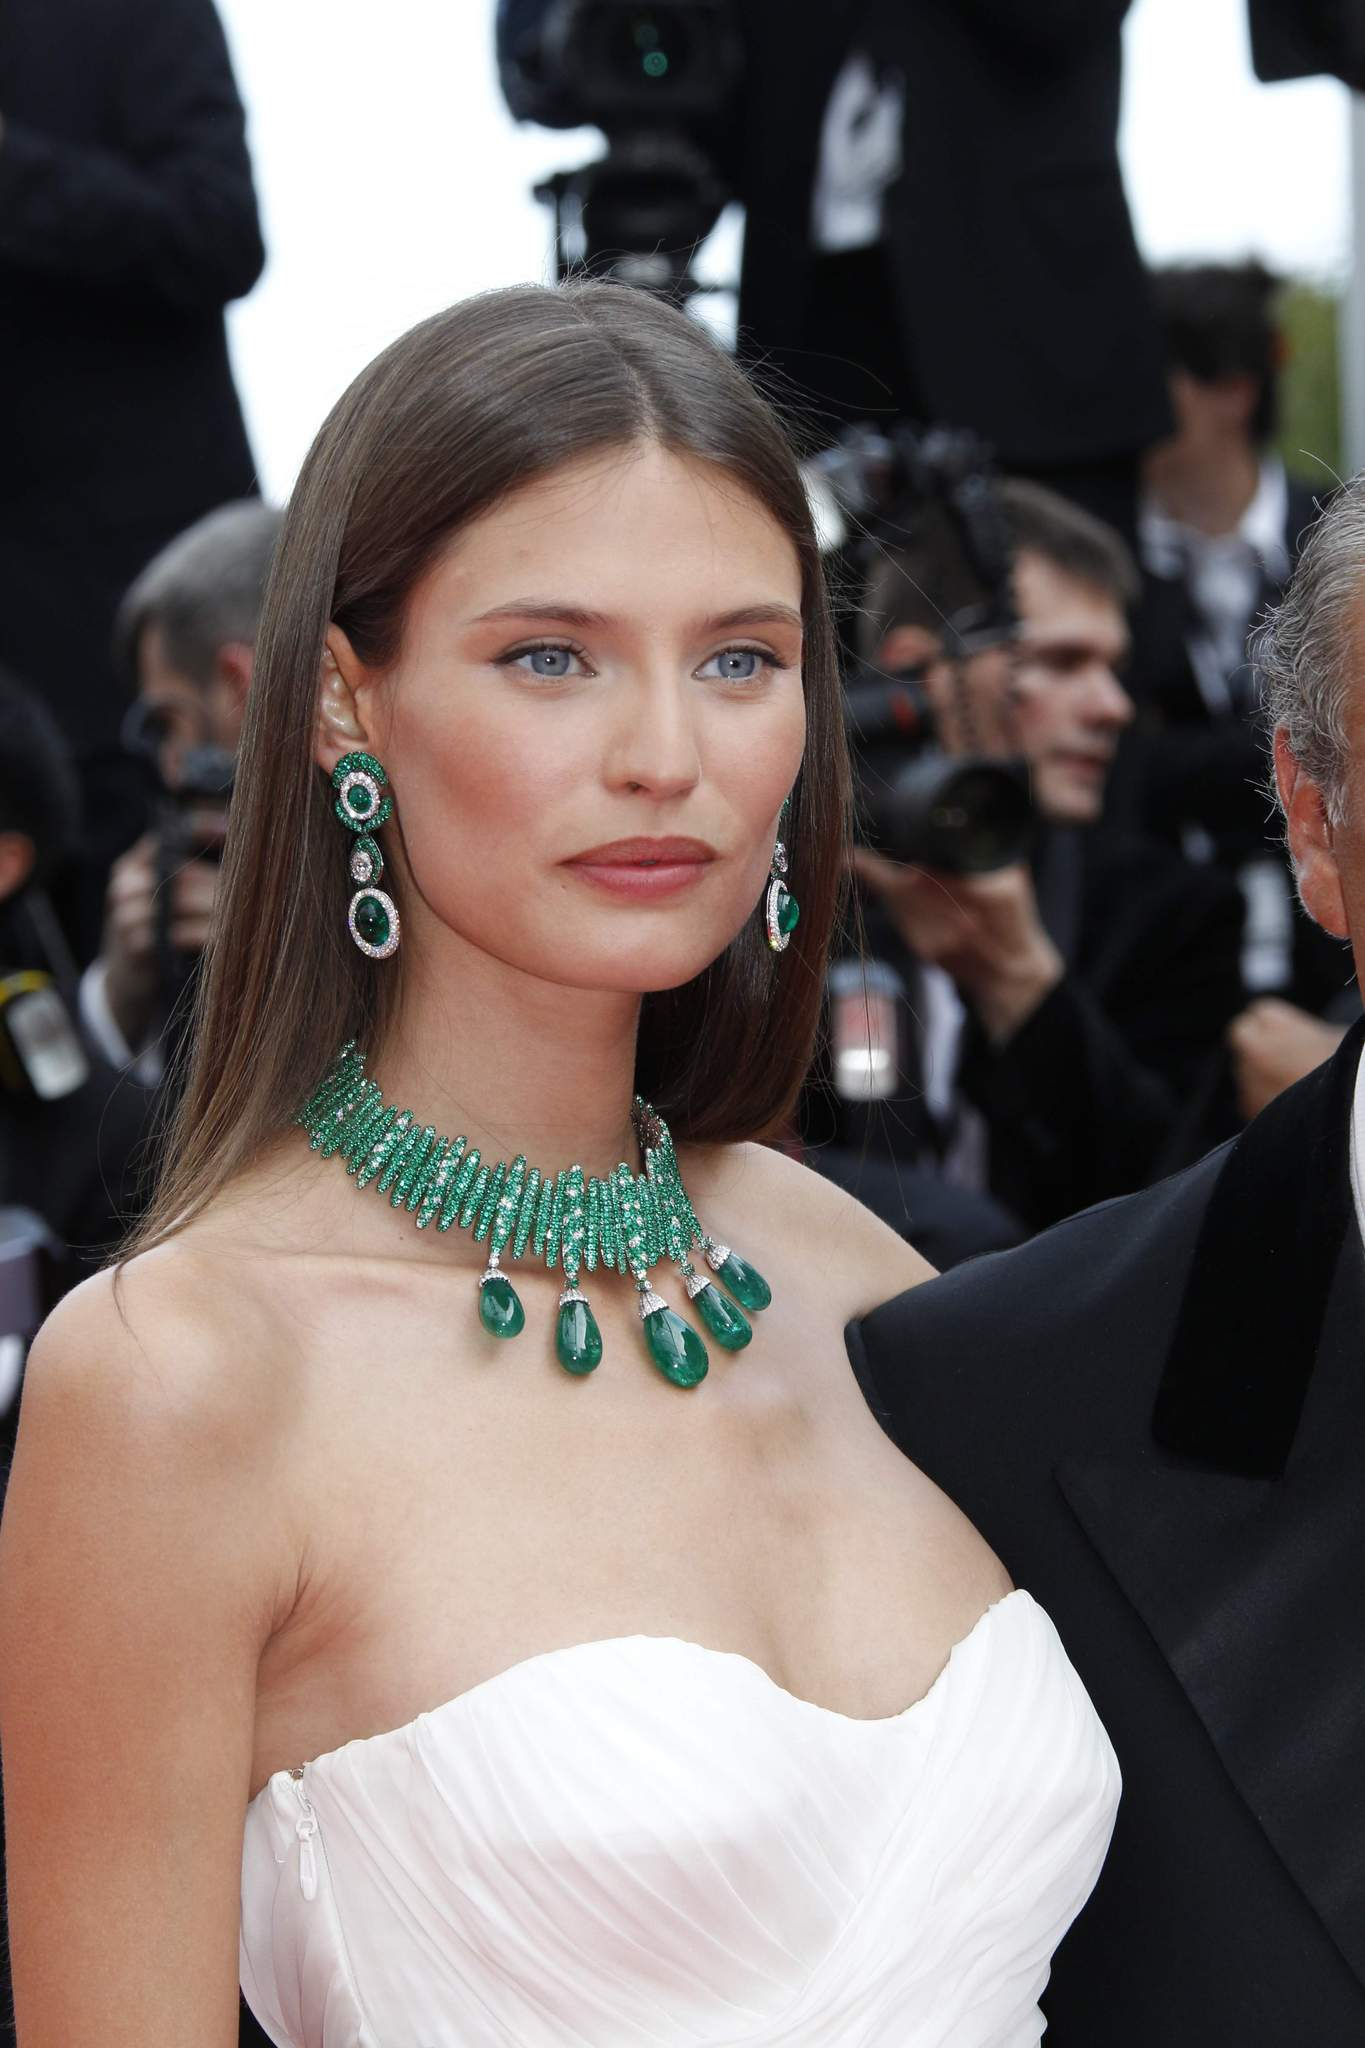 Celebrity Camille Hurel nude (44 foto and video), Tits, Cleavage, Feet, underwear 2019